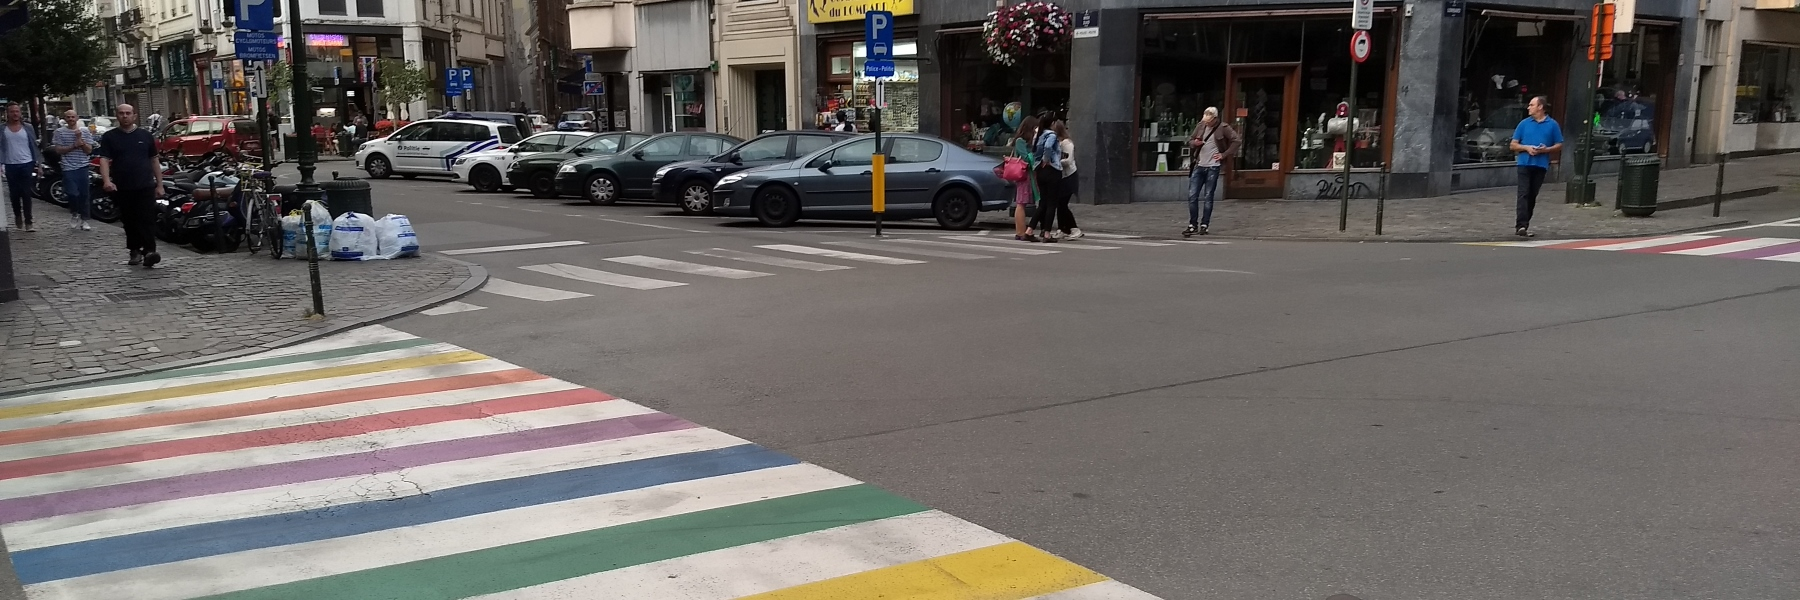 Brussels zebra crossings